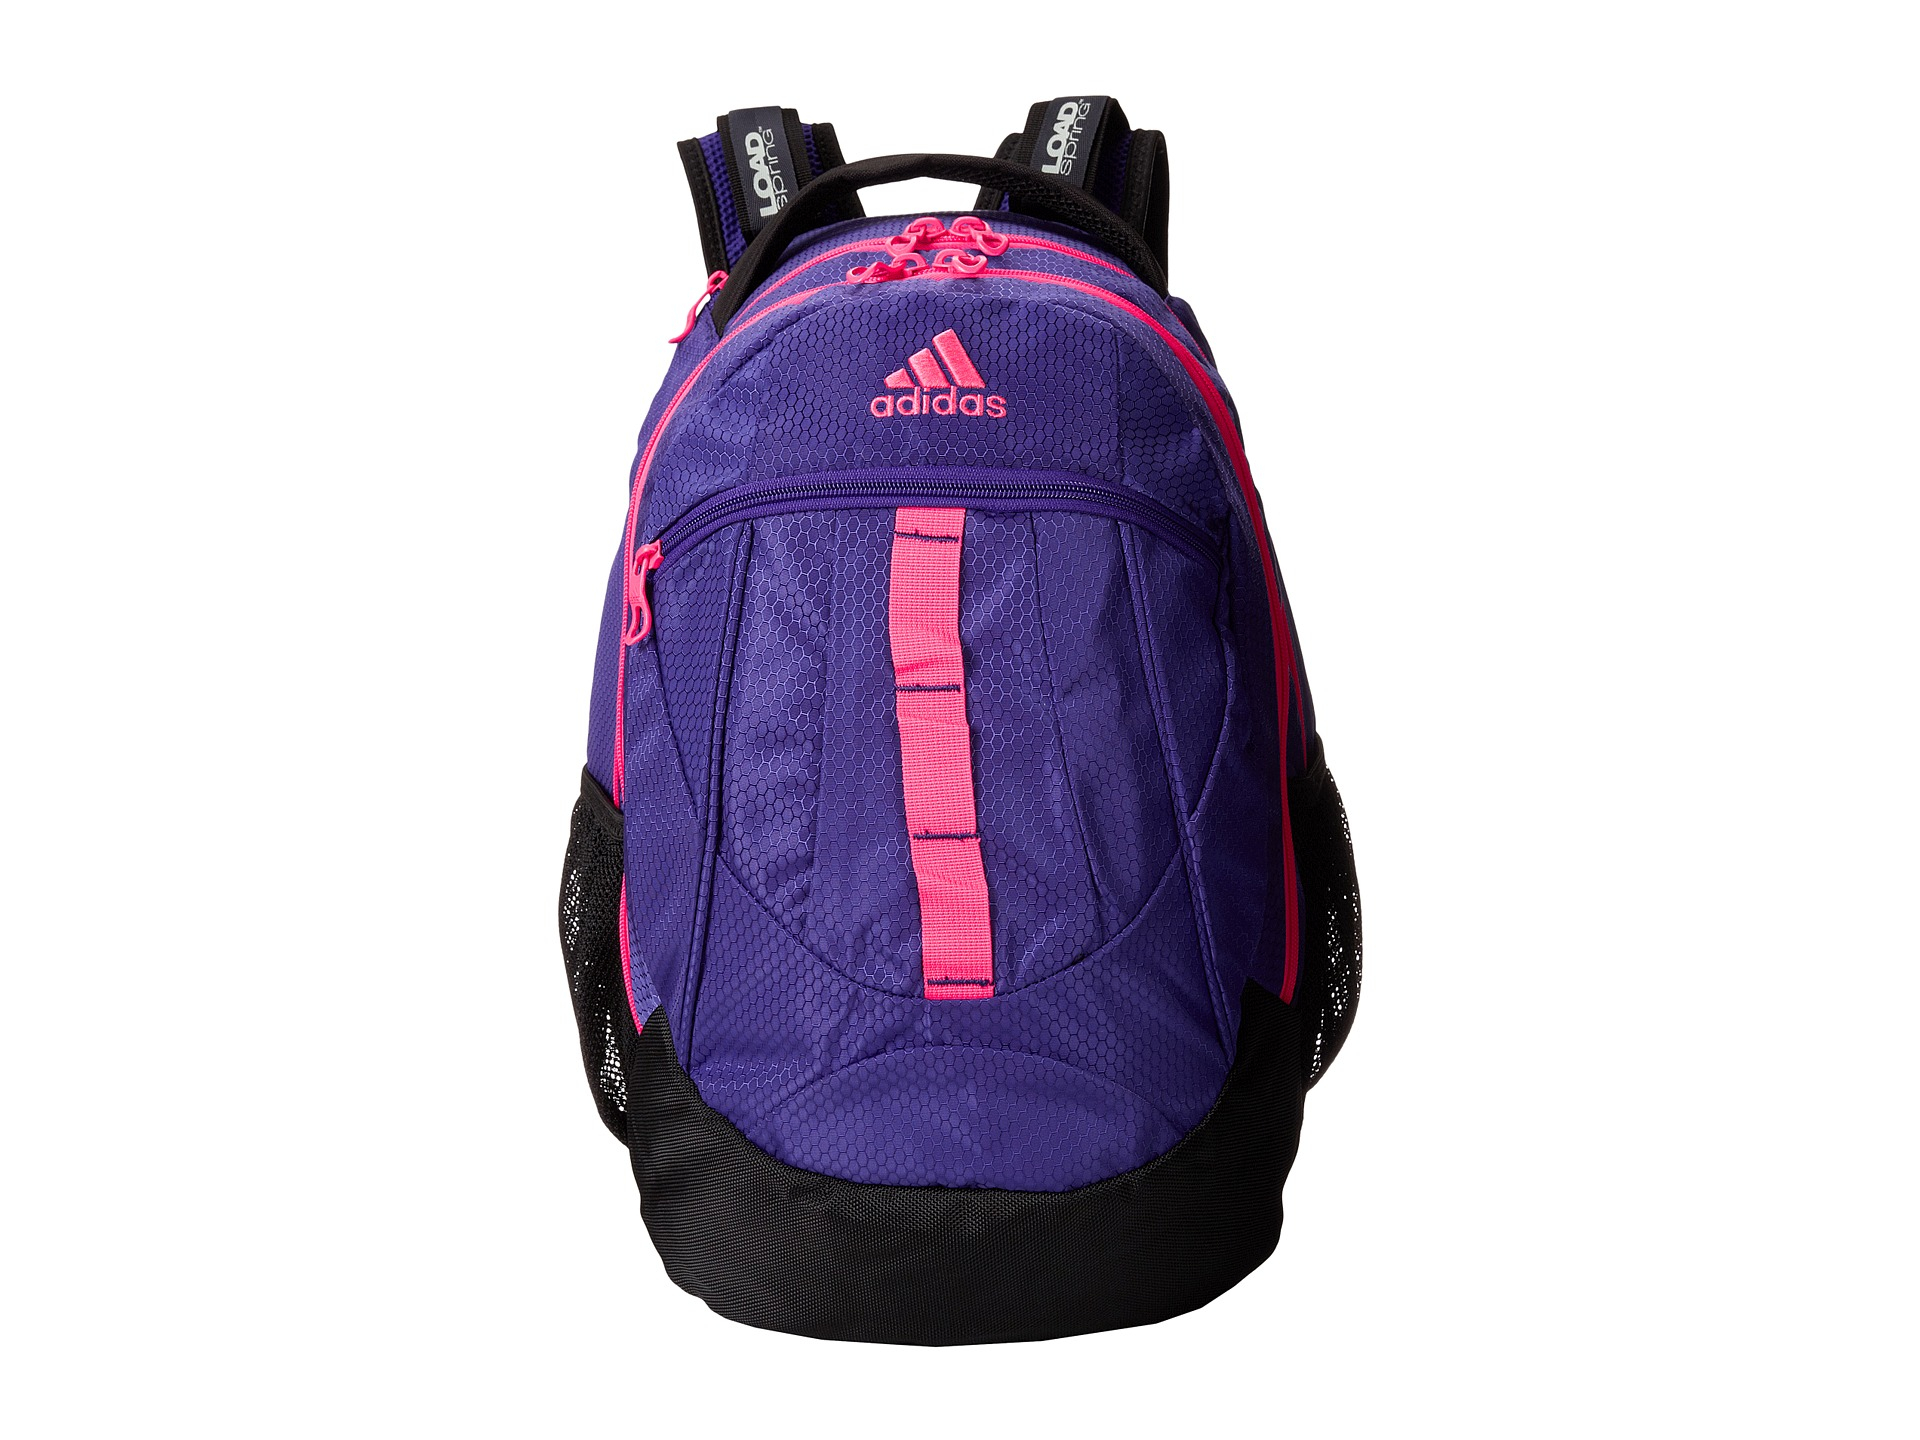 Adidas 2014 Hickory Backpack in Purple (Blast PurpleSolar Pink)